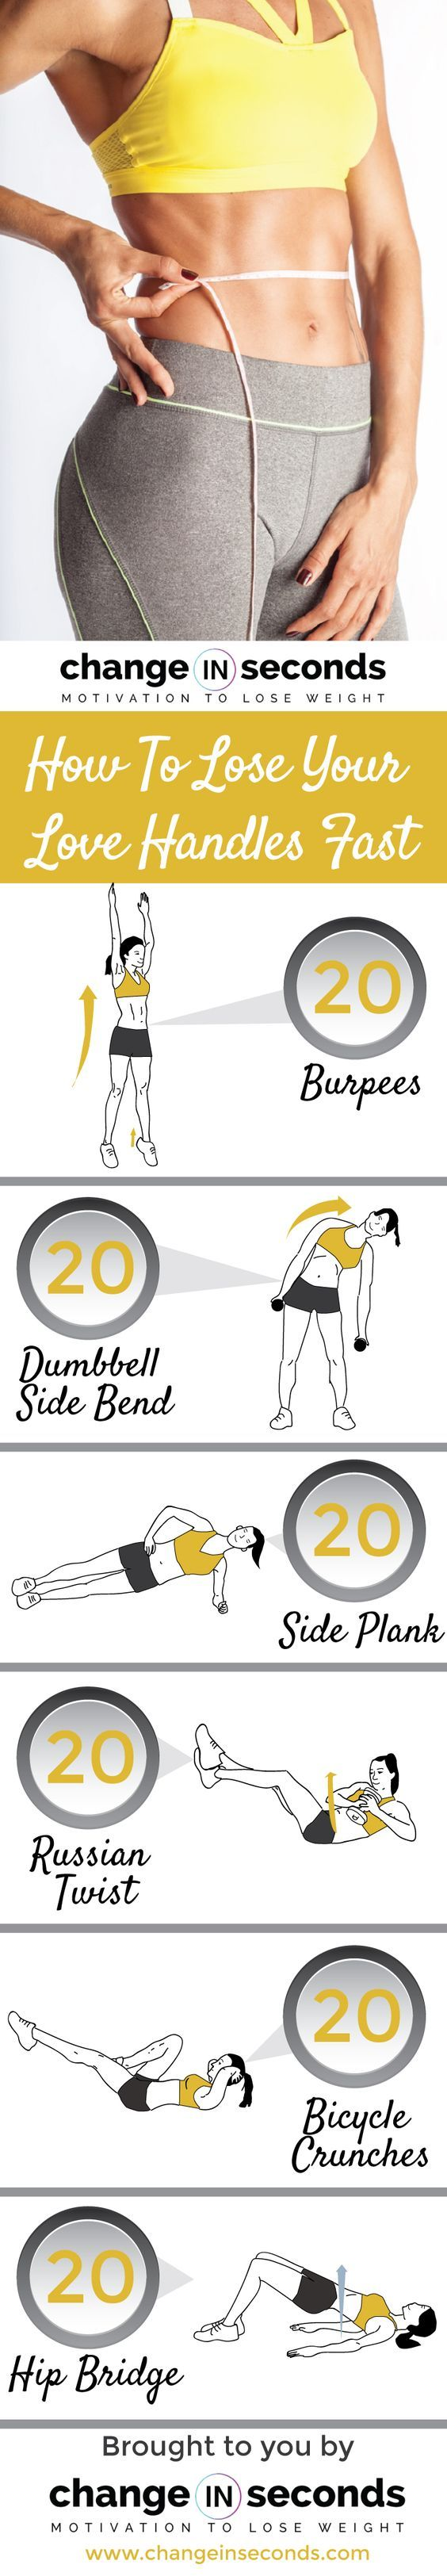 32 Best Best Abs Ever Images On Pinterest  Exercise -6515